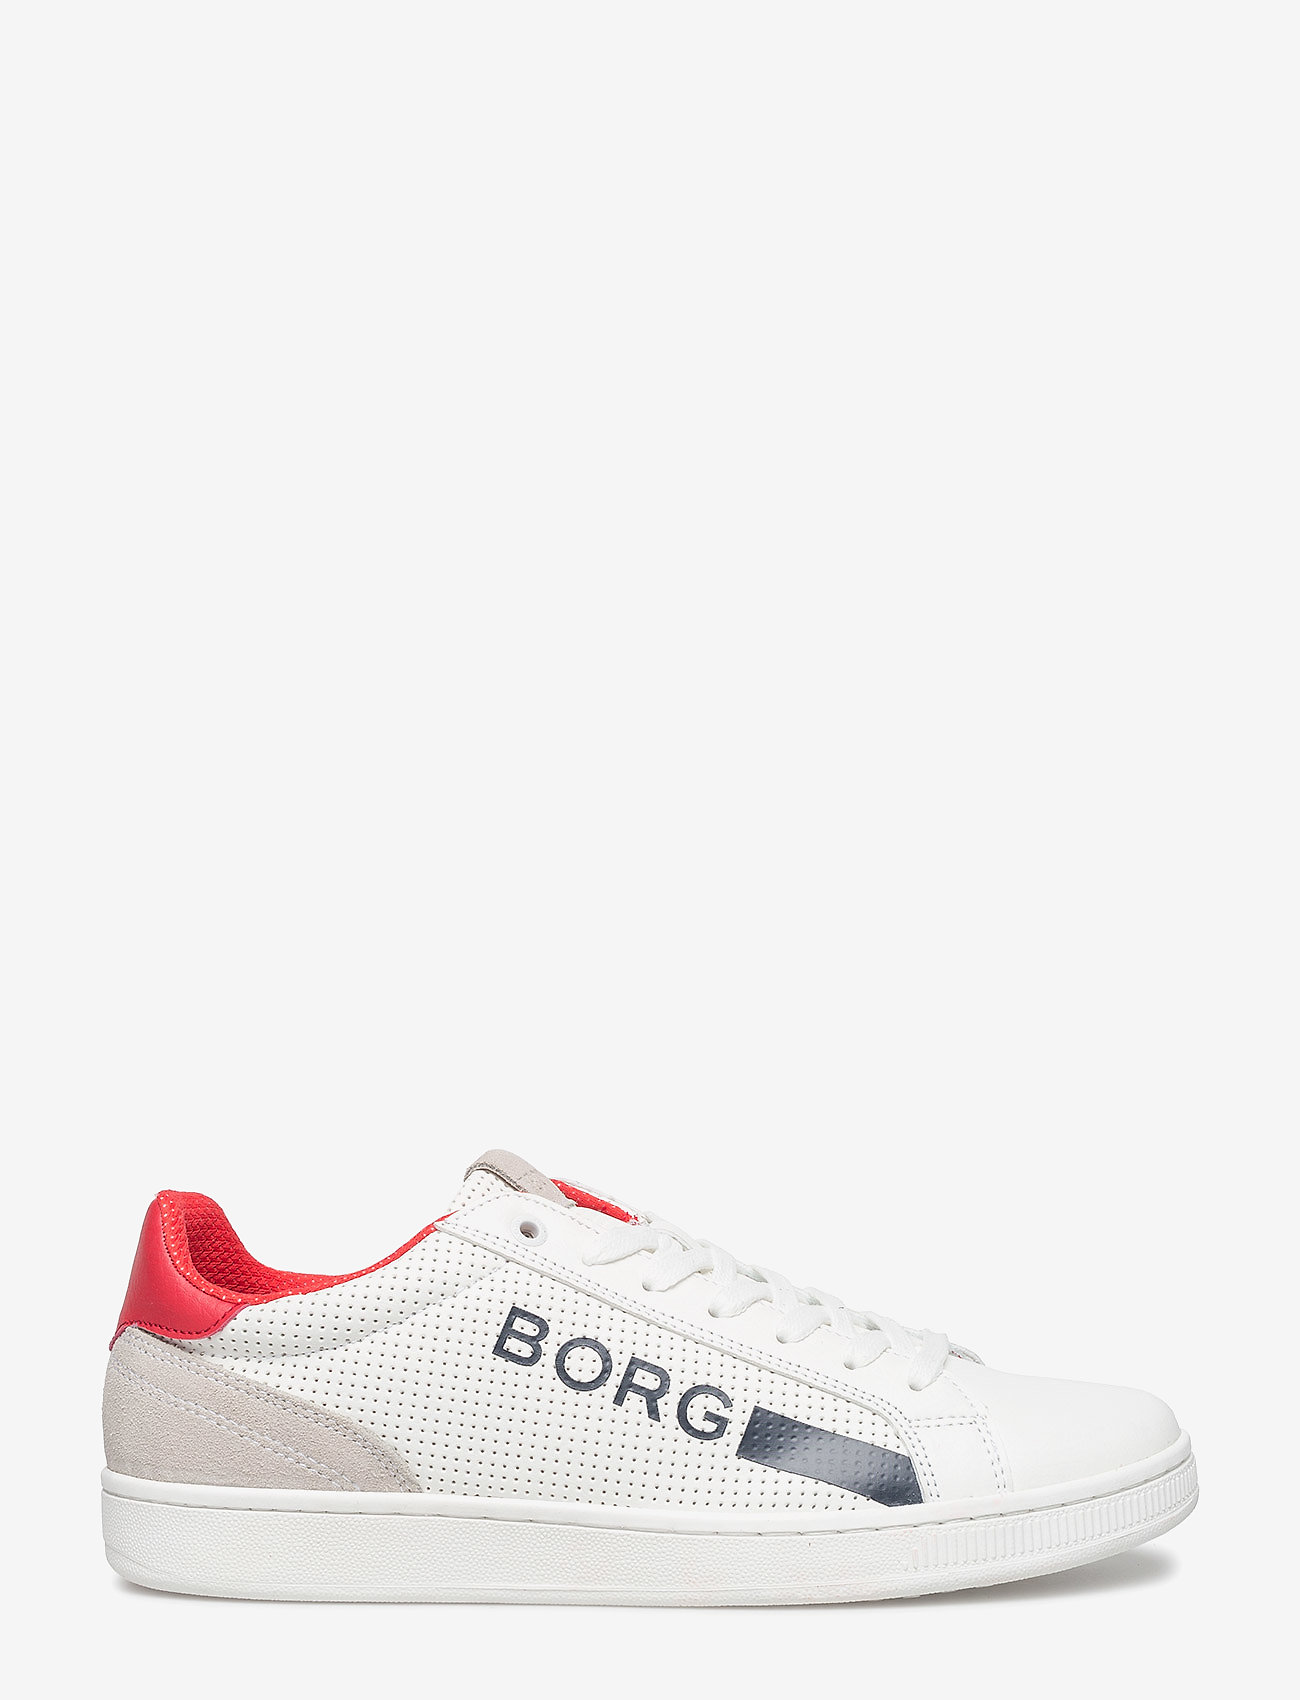 Björn Borg - T330 Low Ctr Prf M - laag sneakers - white/red - 1